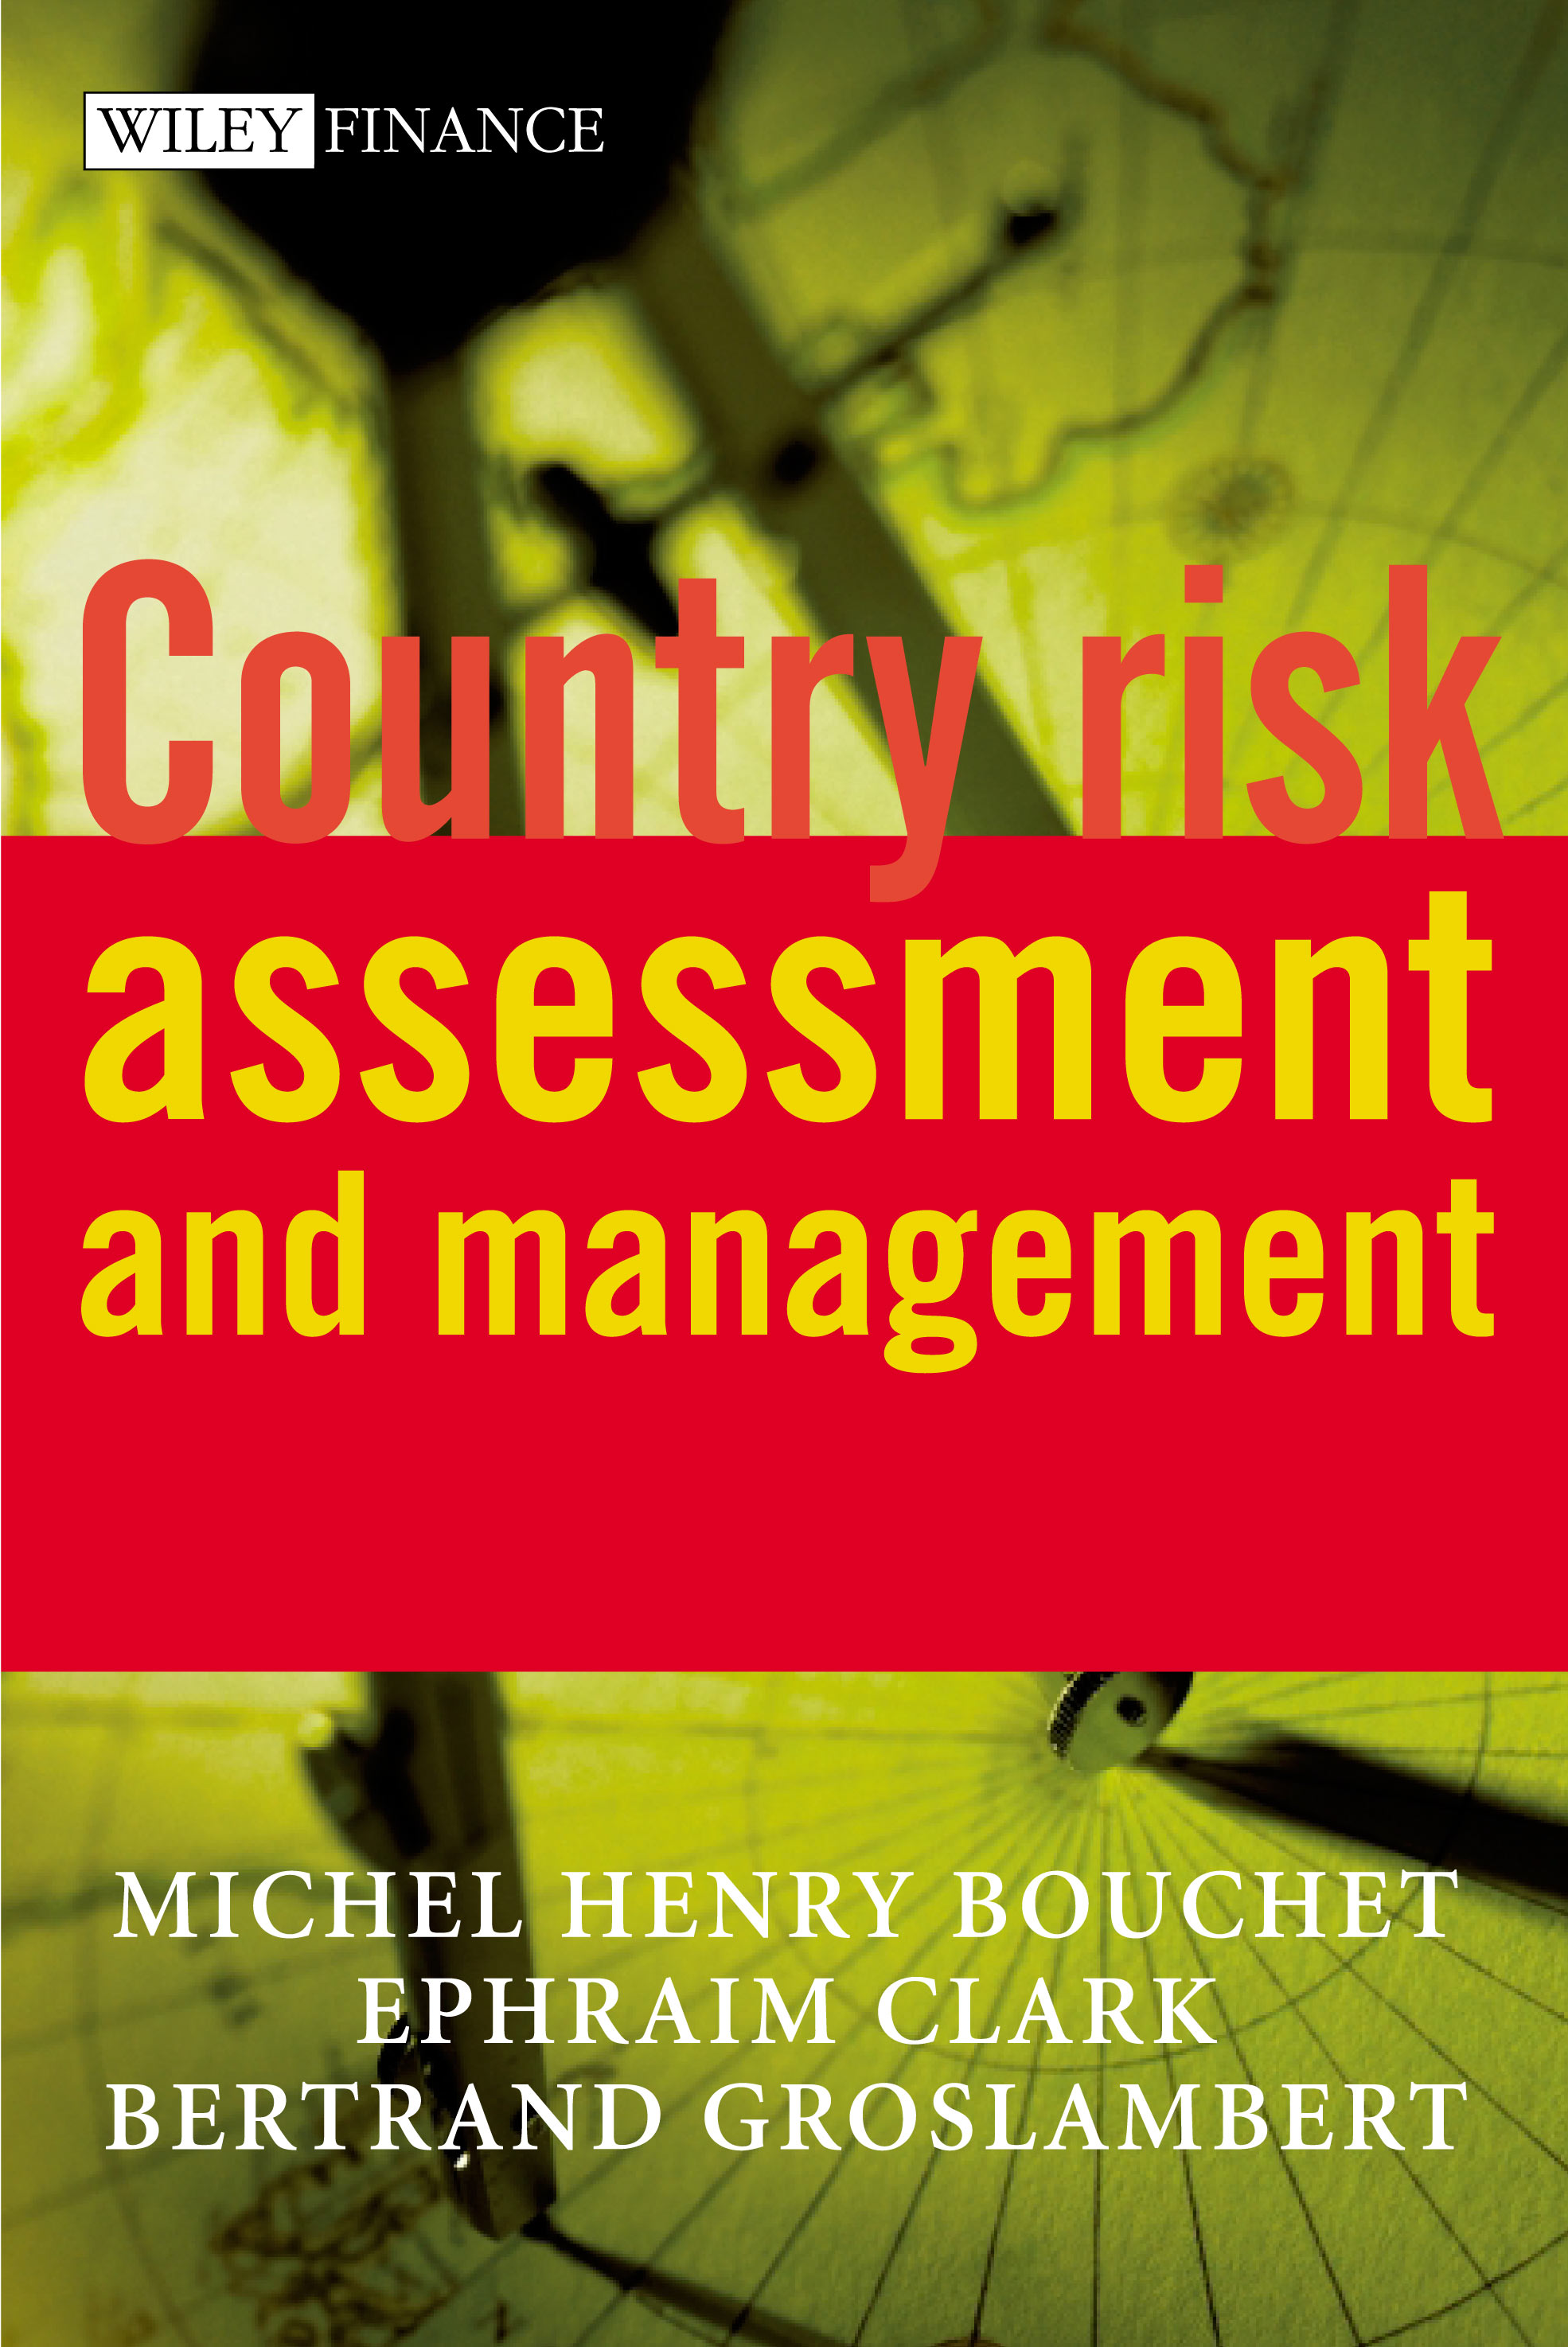 COUNTRY RISK-assessment and management